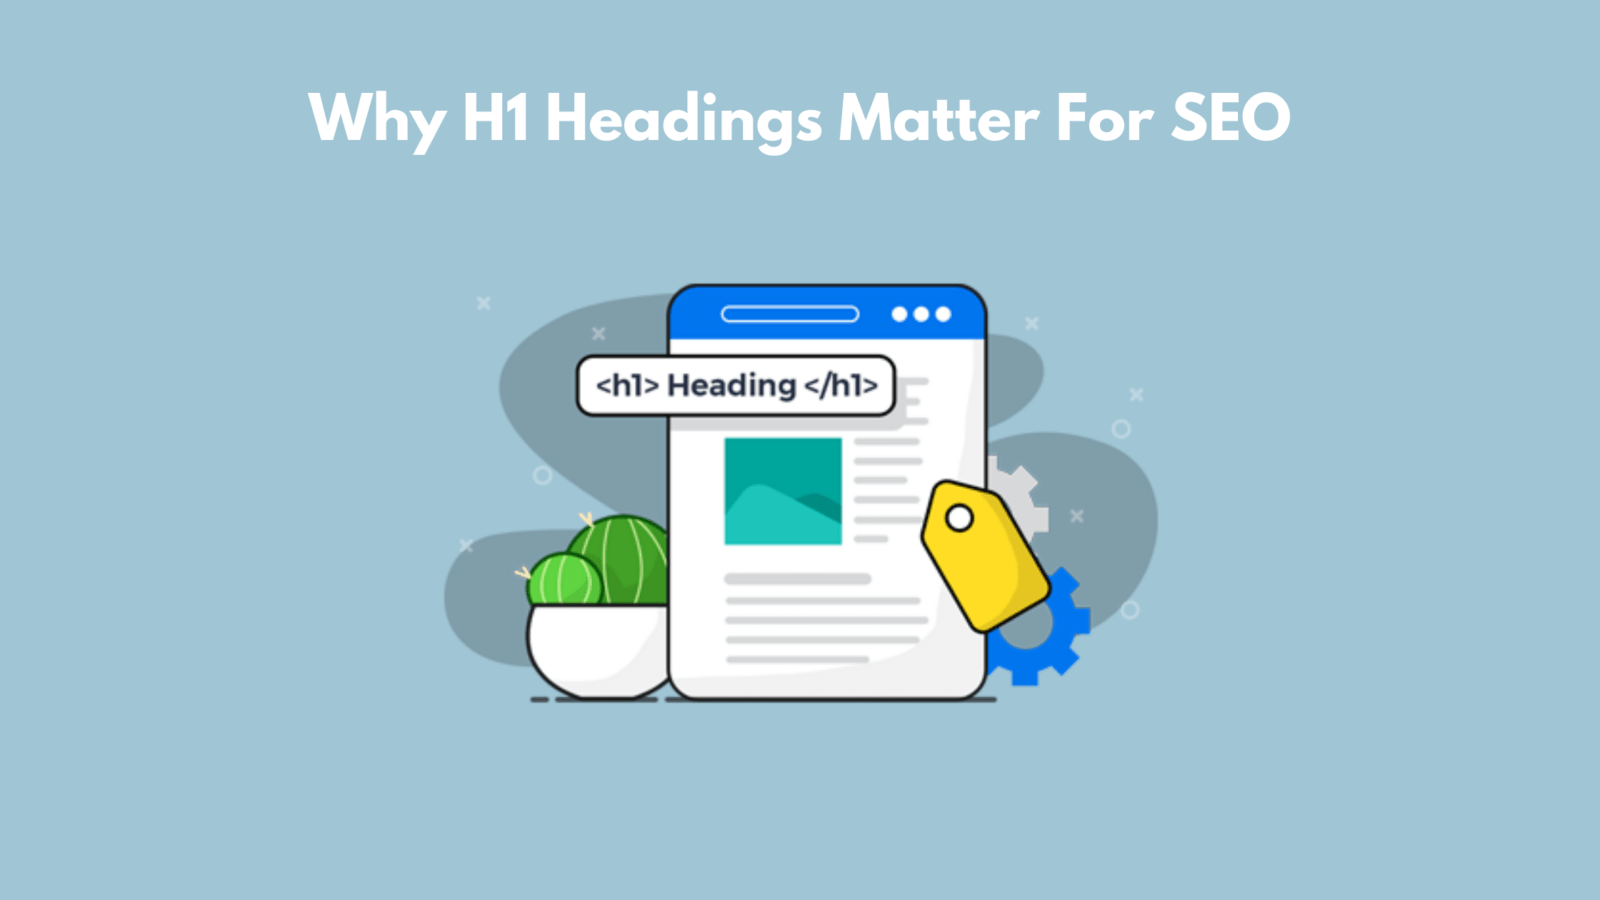 Why H1 Heading matters for SEO